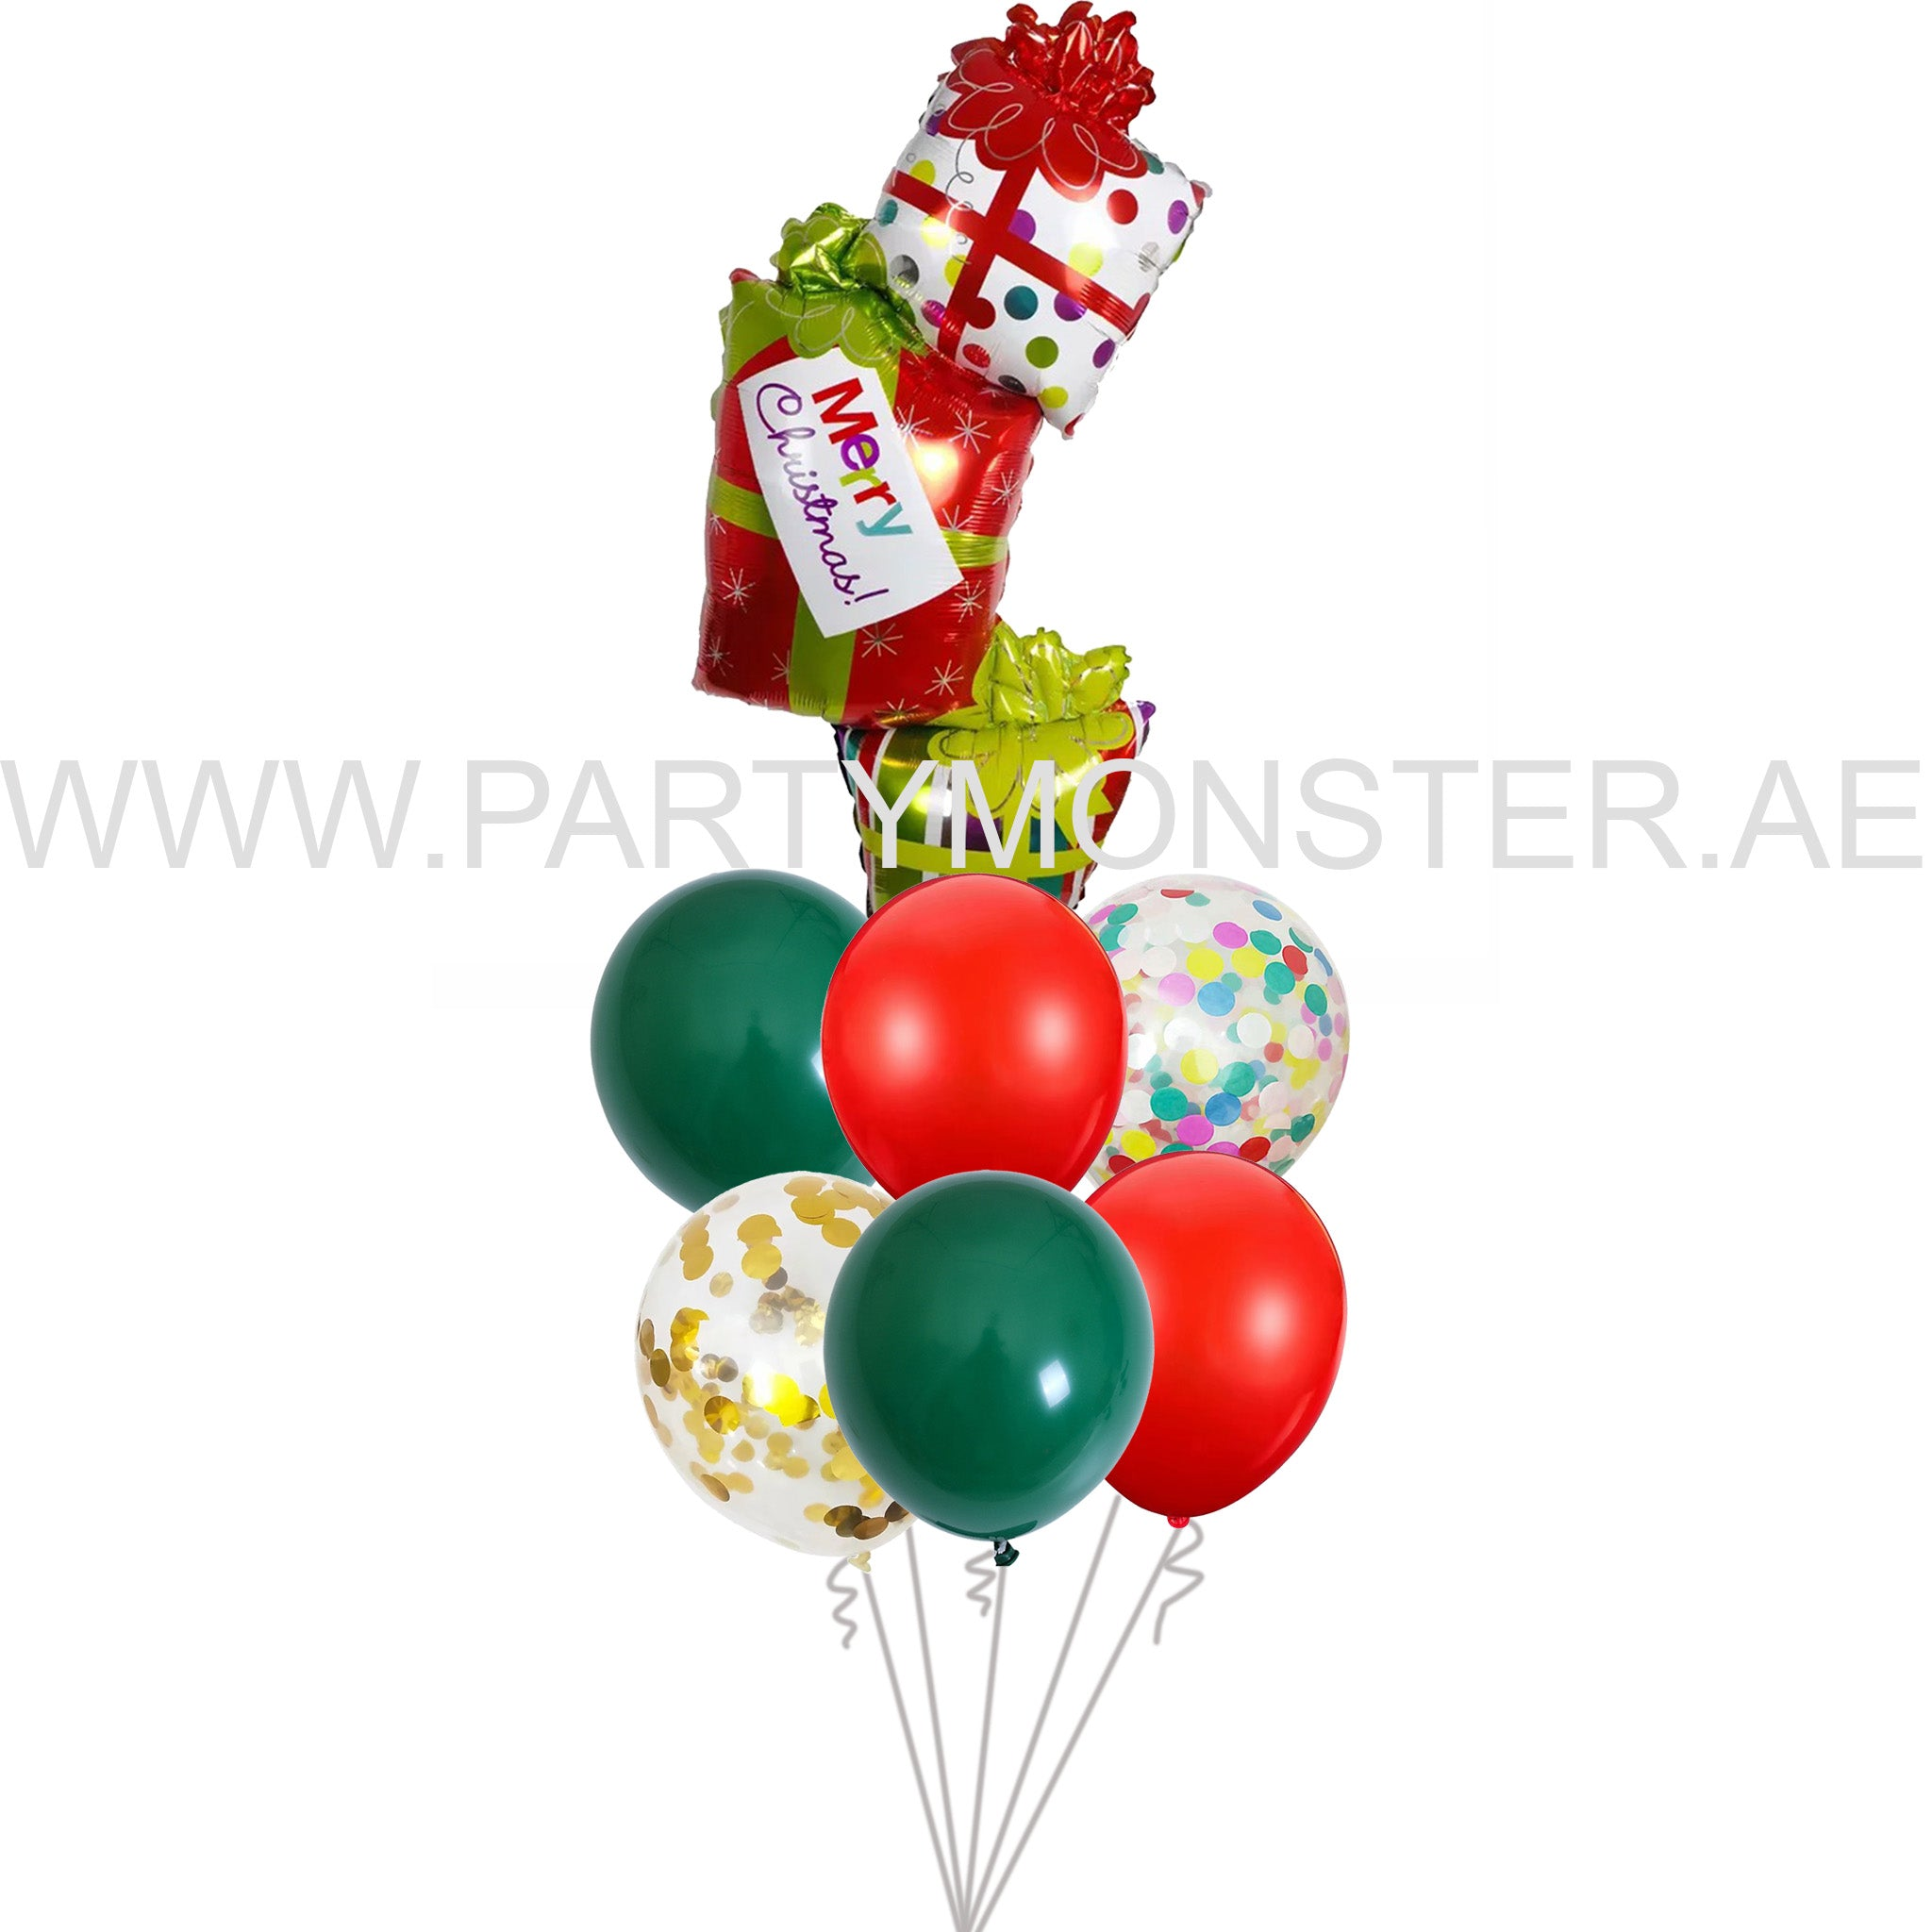 Merry Christmas latex balloons for sale online in Dubai